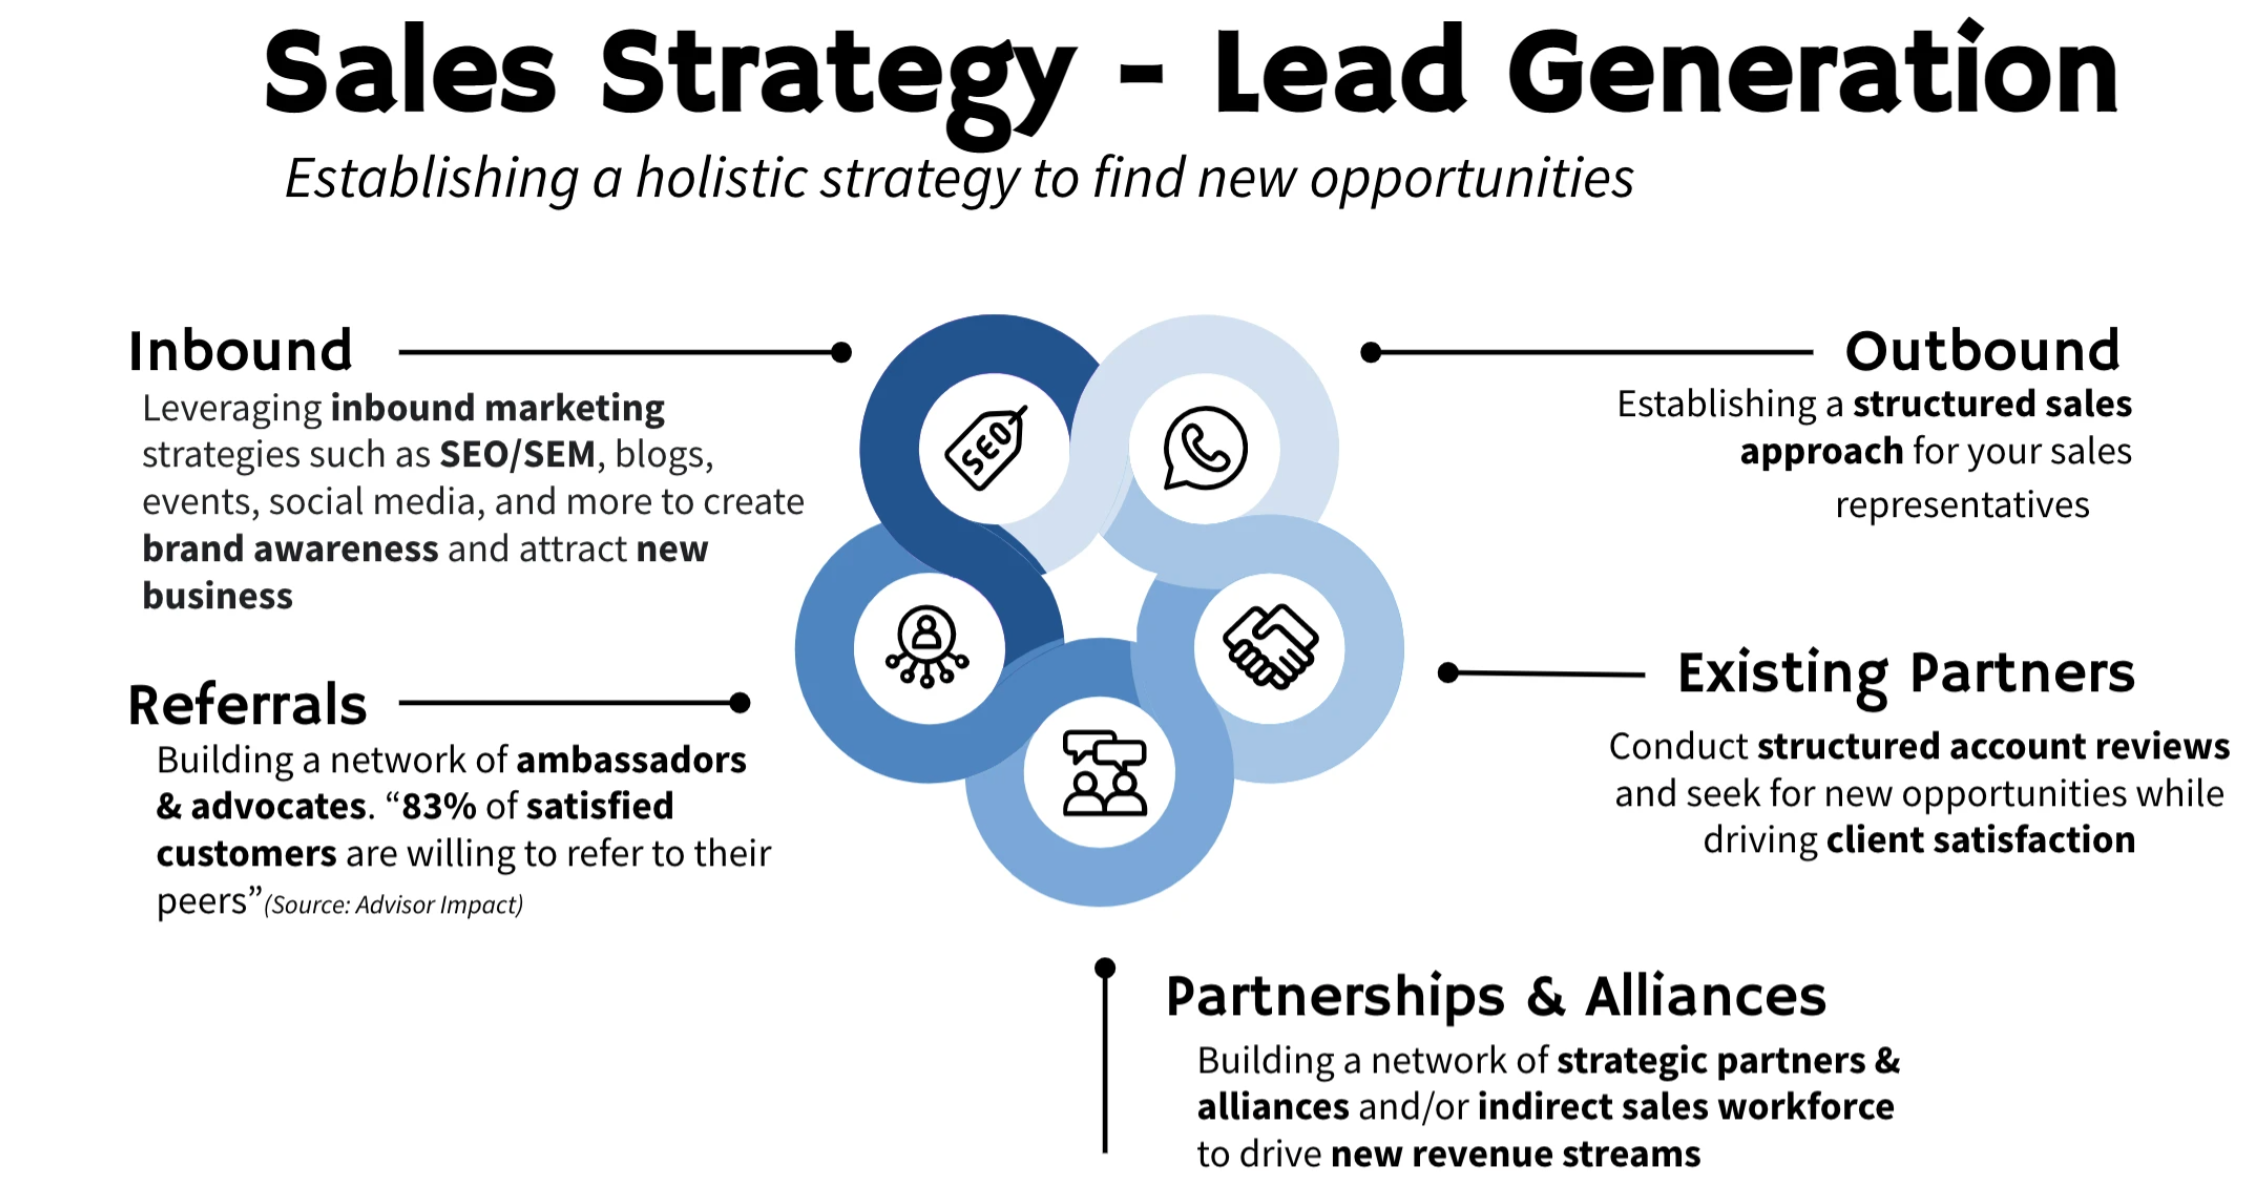 XMA sales strategy (lead generation) workflow guide